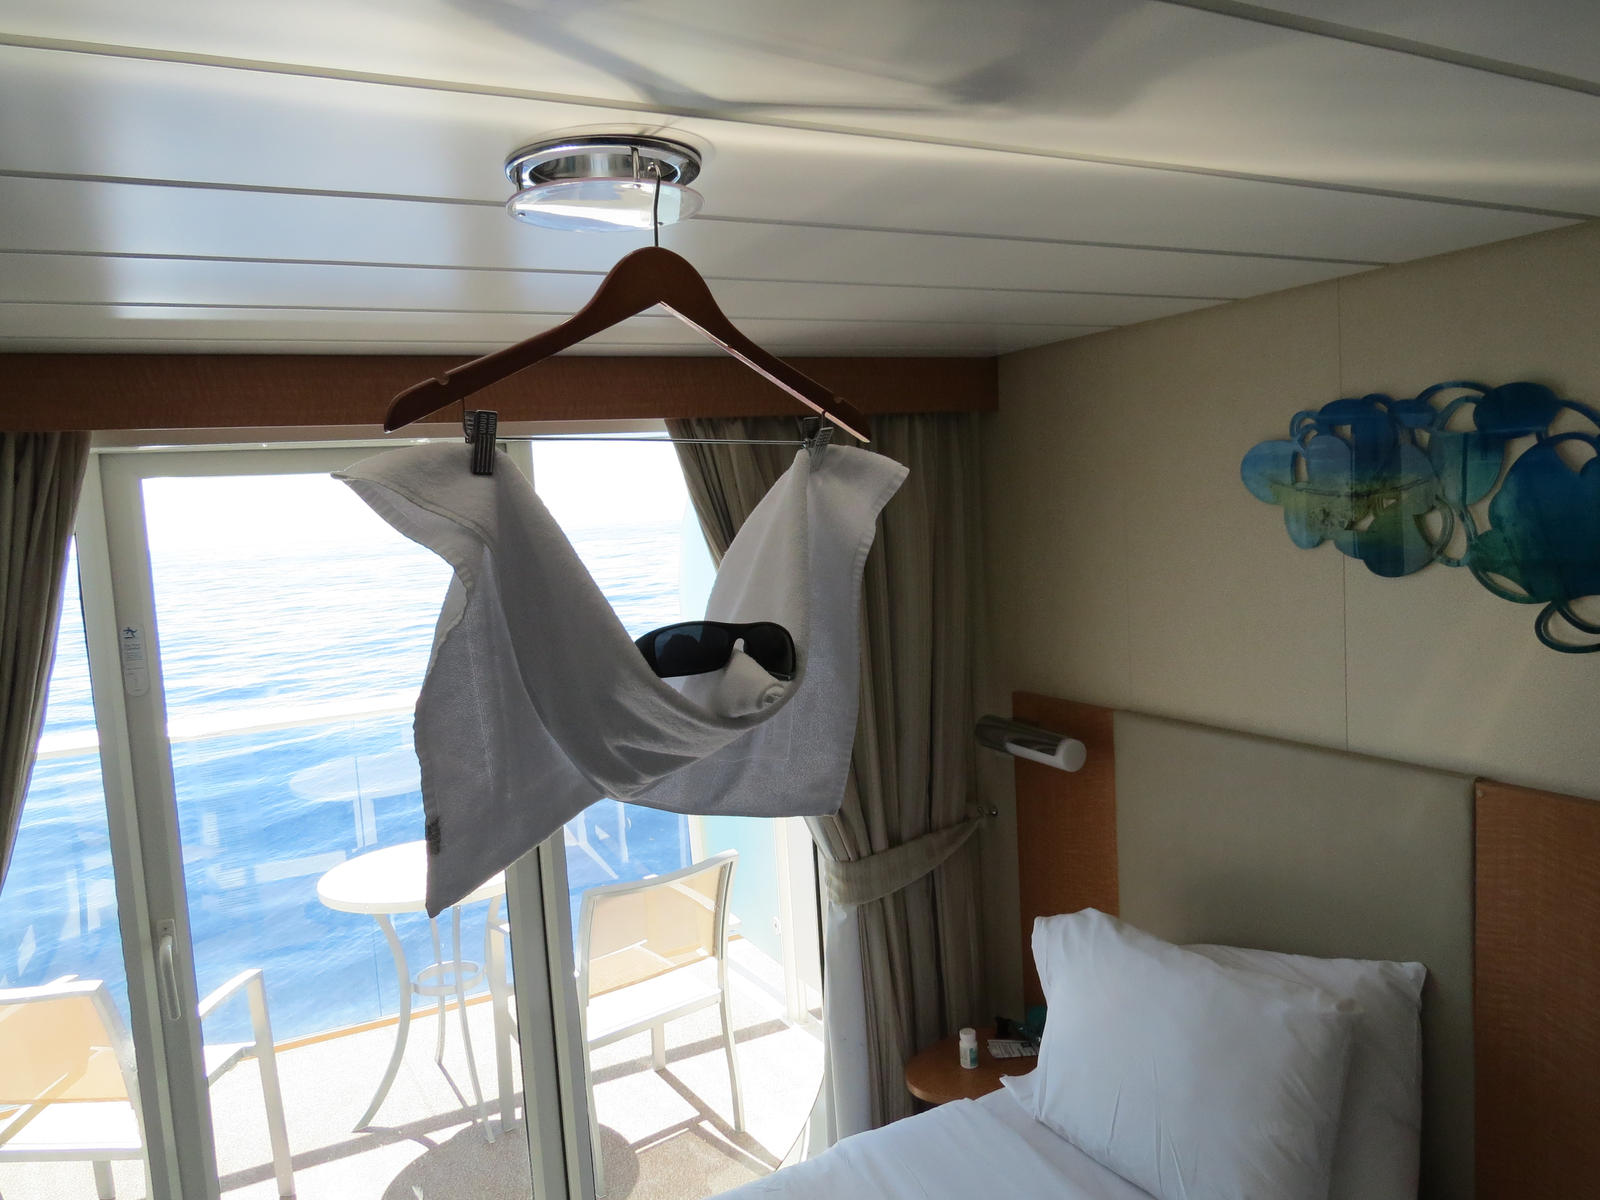 Allure of the seas same bat towel same bat room by malidicus on deviantart - The allure of the modular home ...